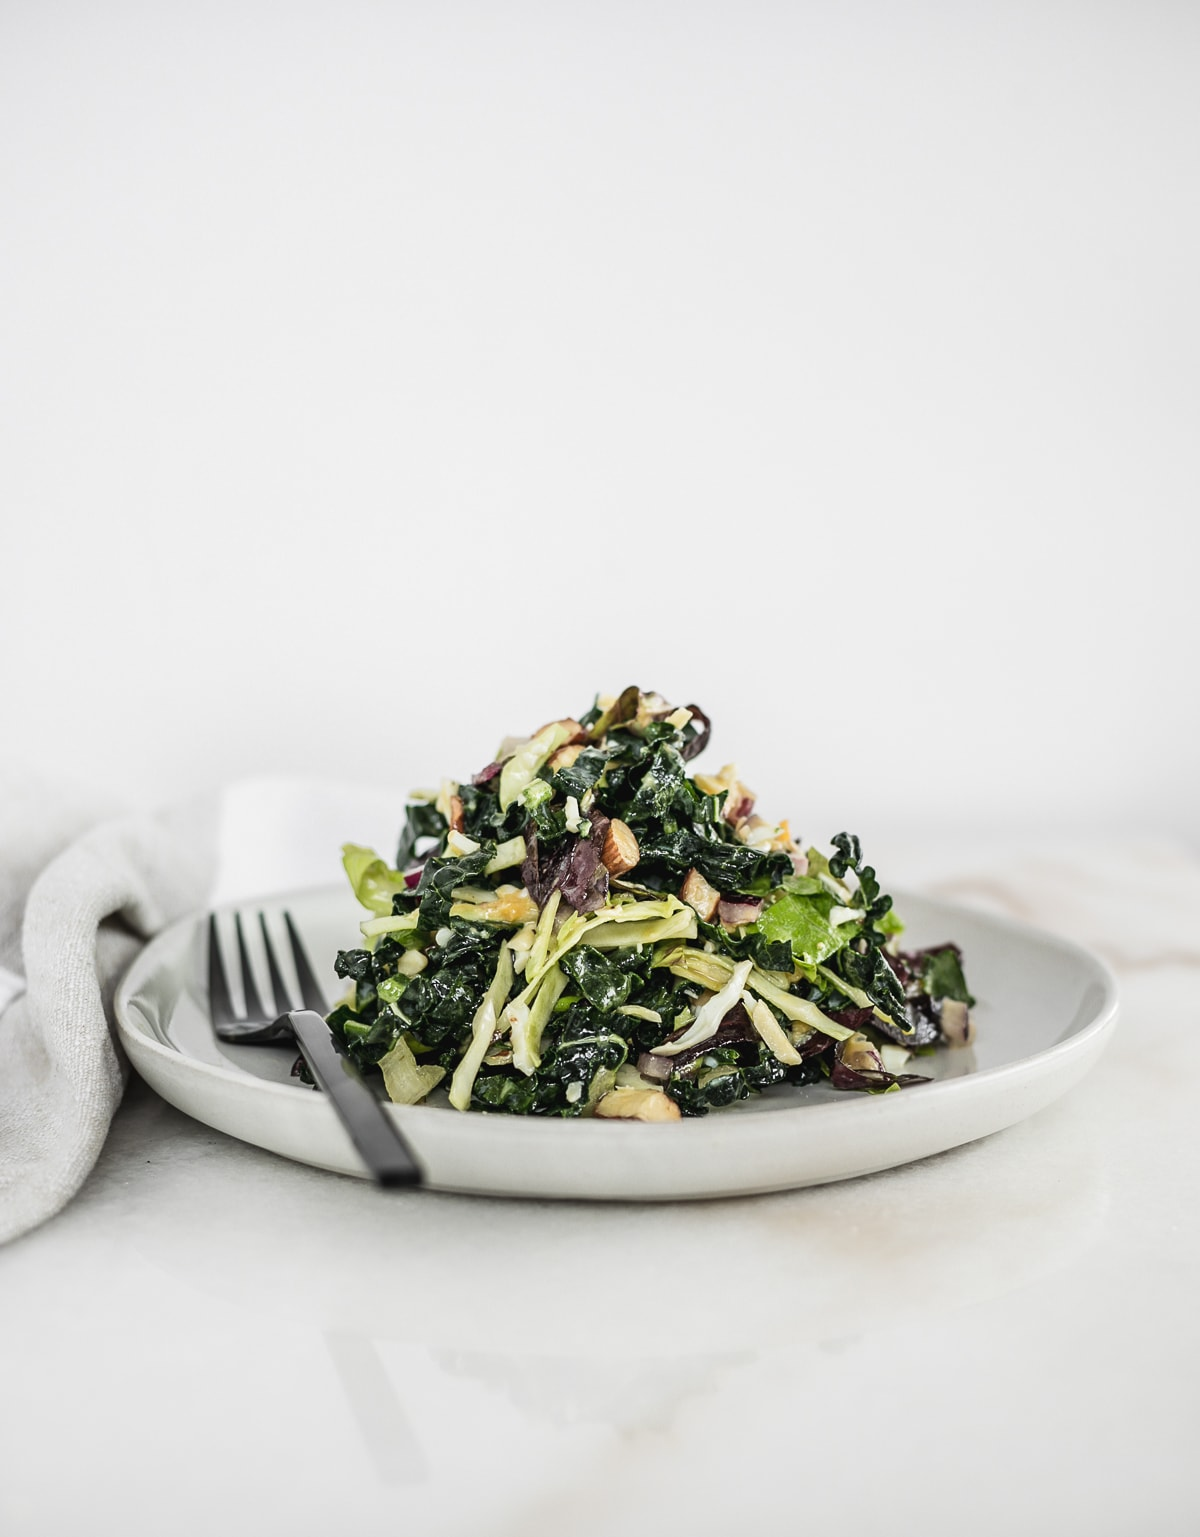 kale salad piled on top of a white plate with a black fork.